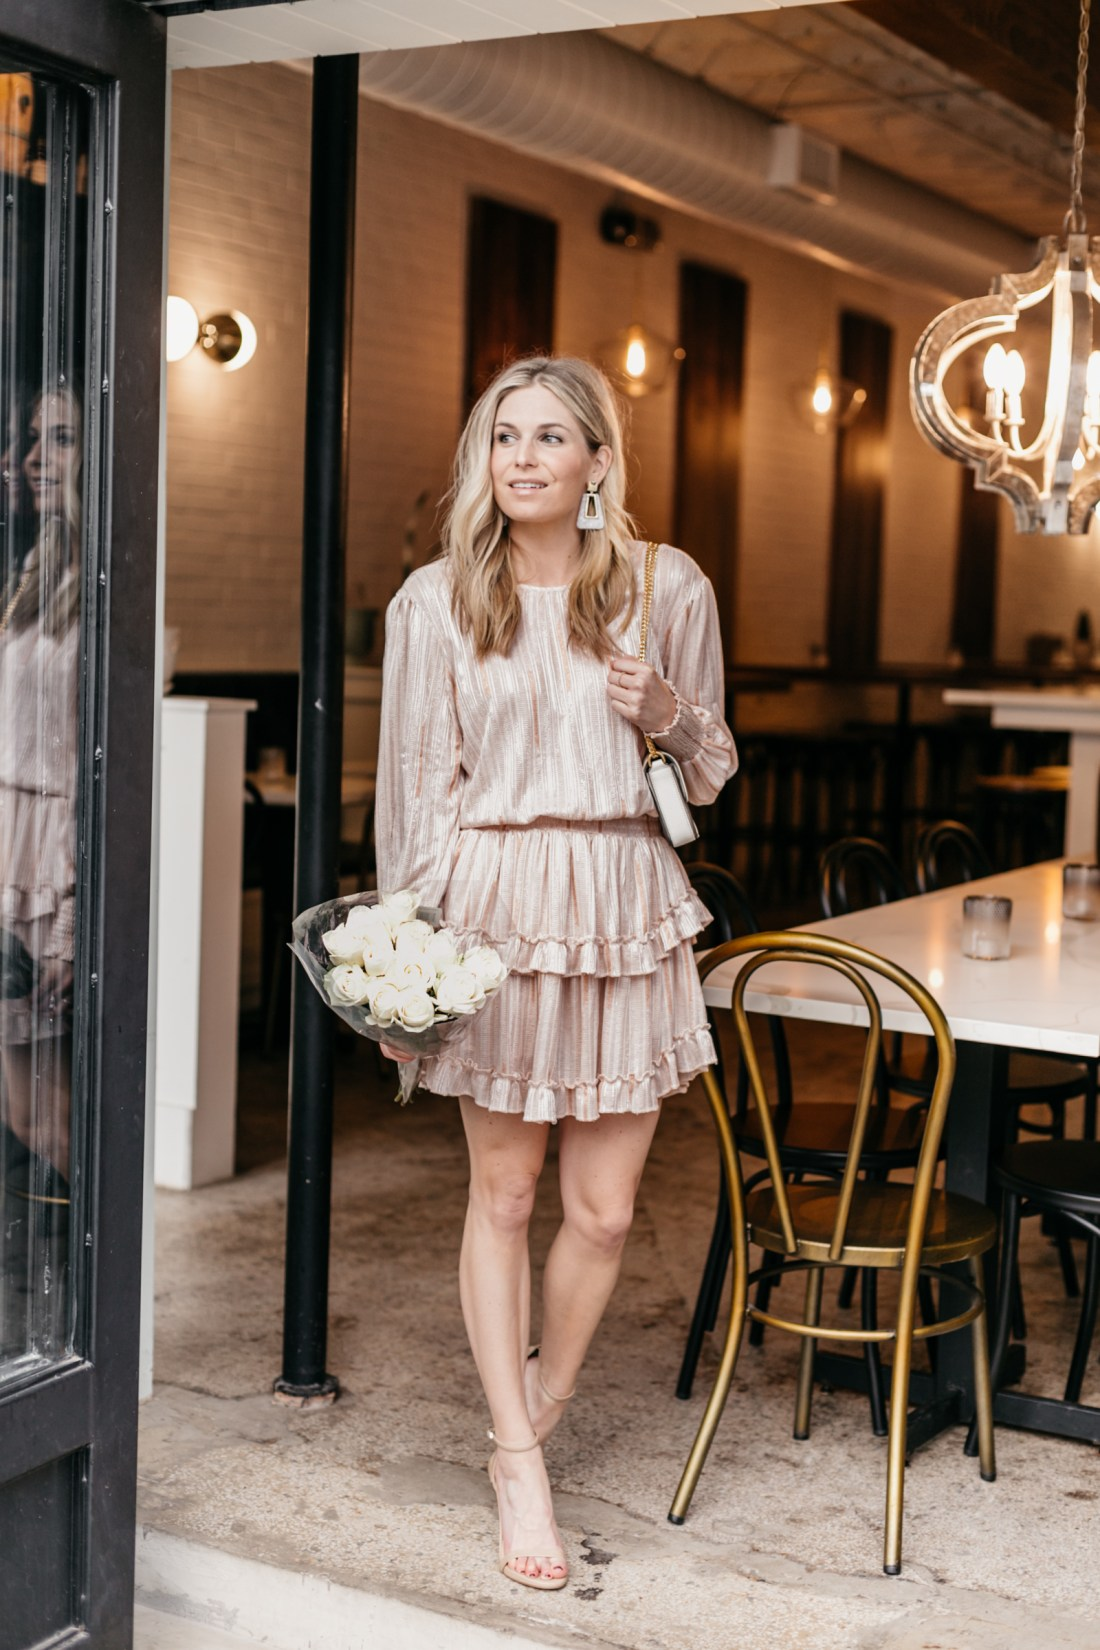 Blush Pink Ruffle Dress & White Roses